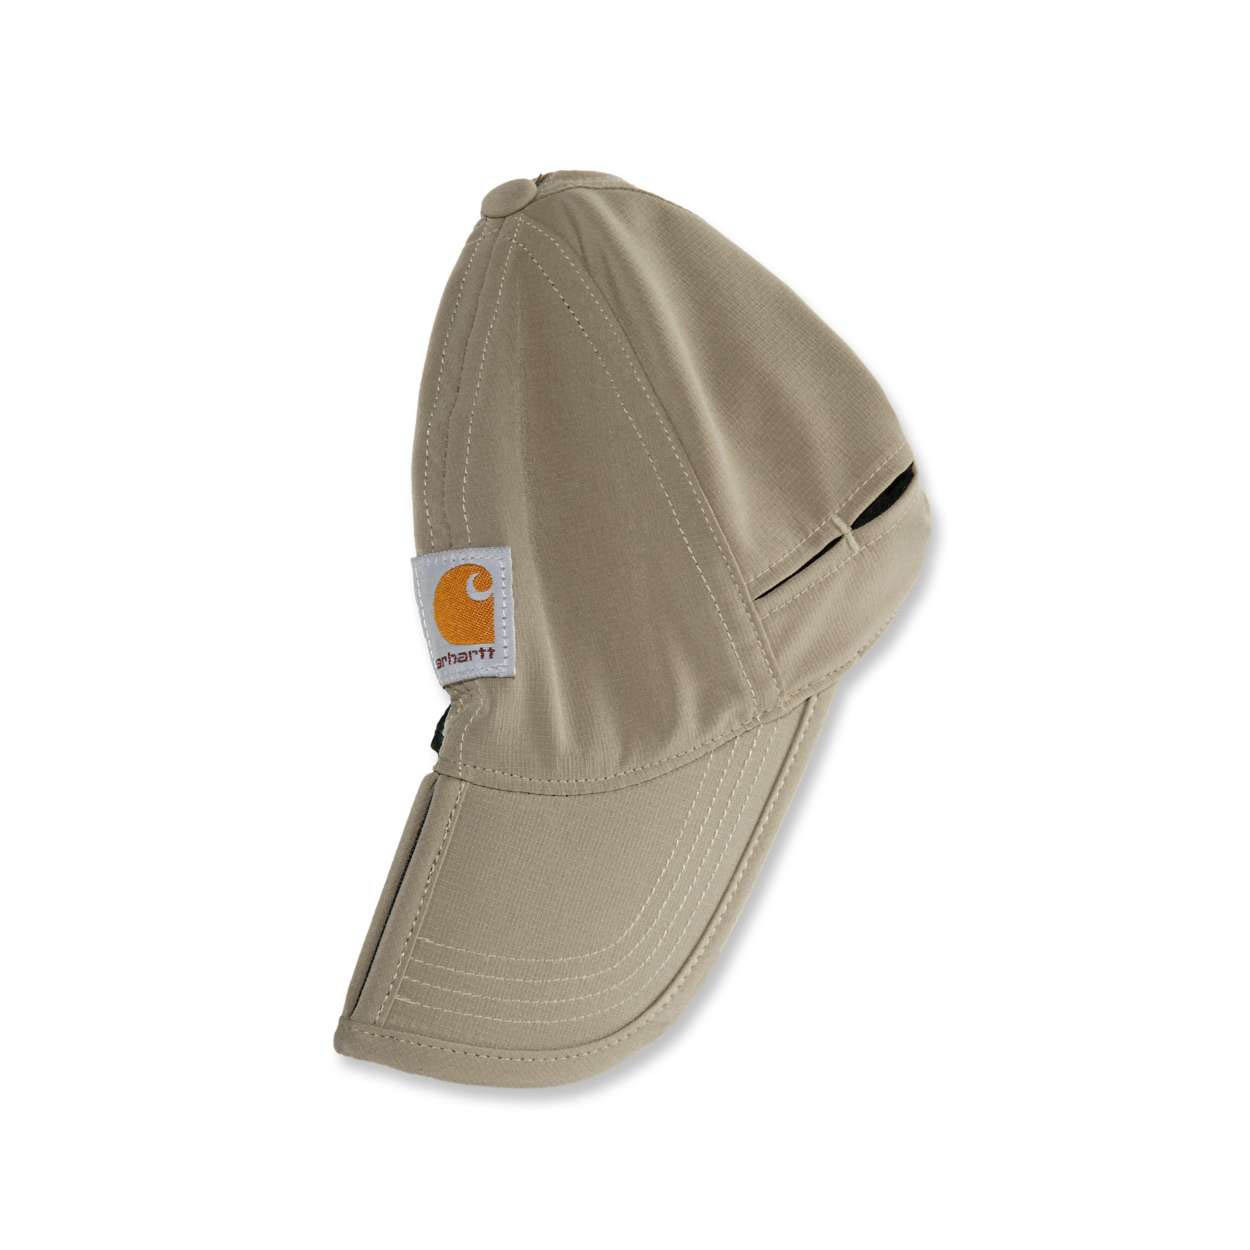 97524051c92ef Carhartt 103804 Force Extremes Angler Packable Cap Desert - Country ...